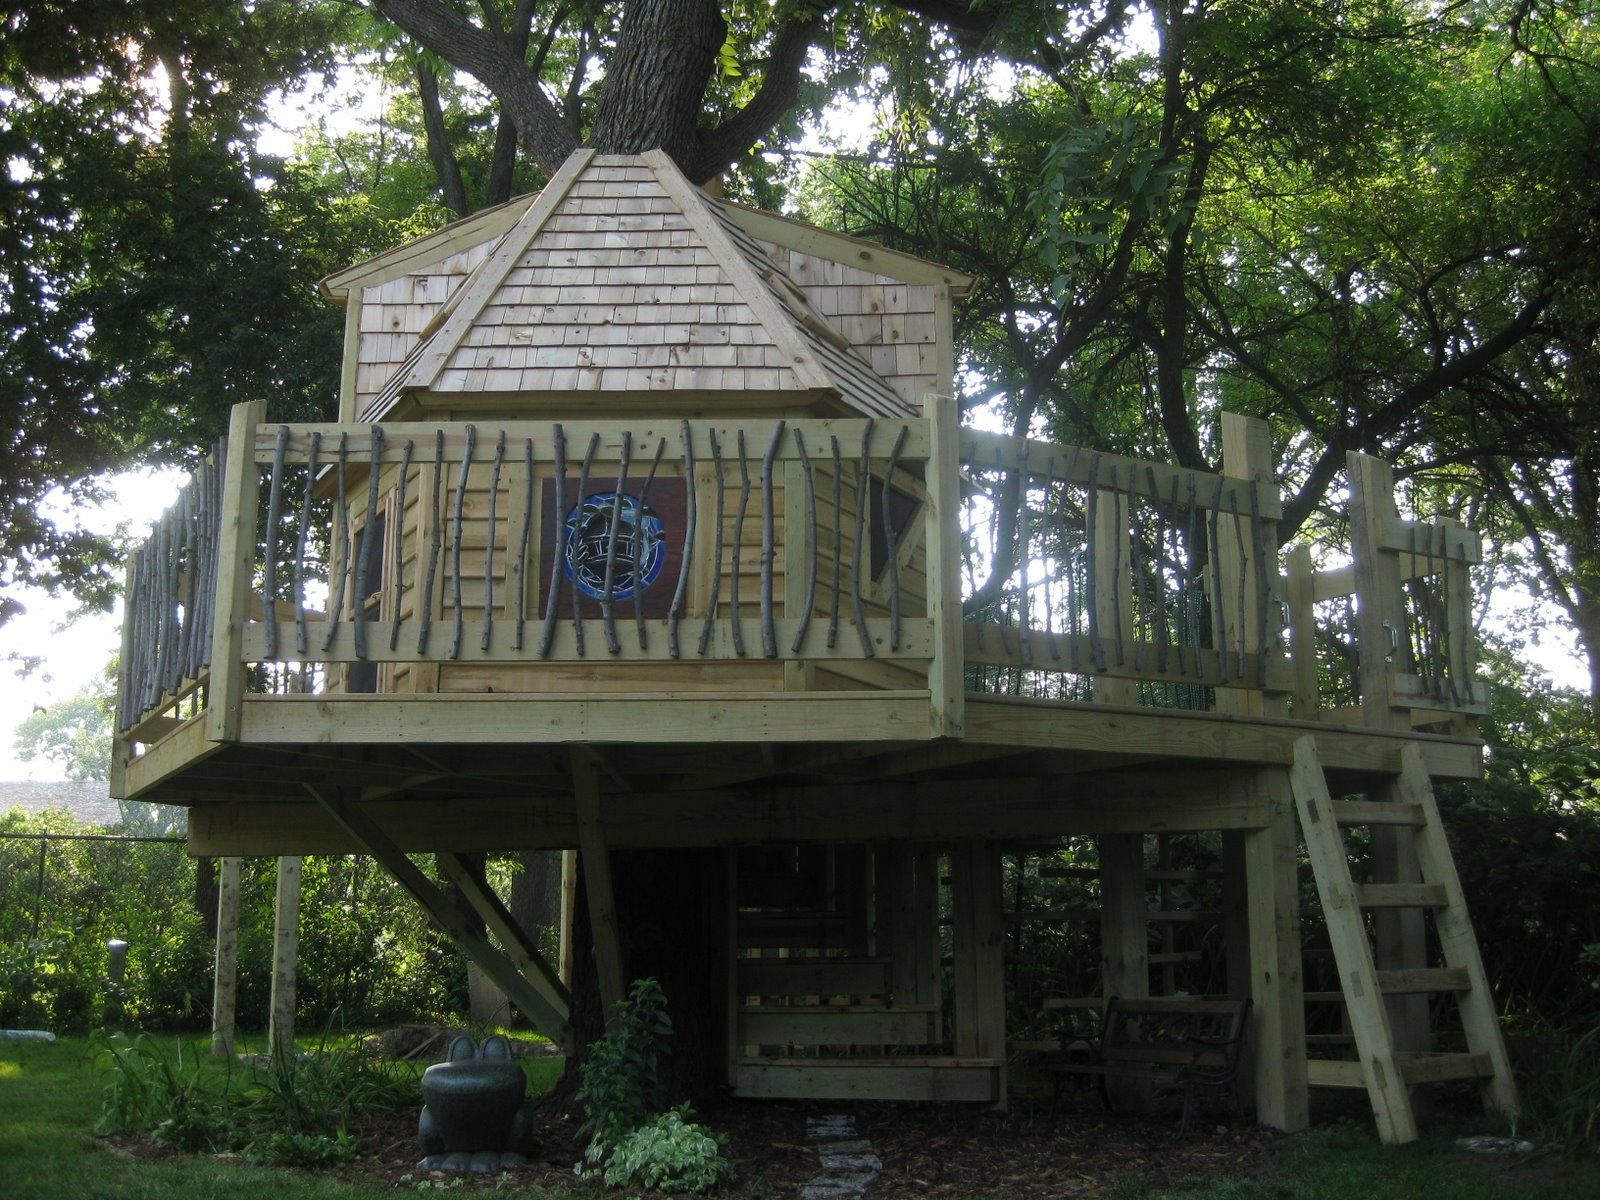 Creative Backyard Playground Ideas | picture tour of the whimsical ...